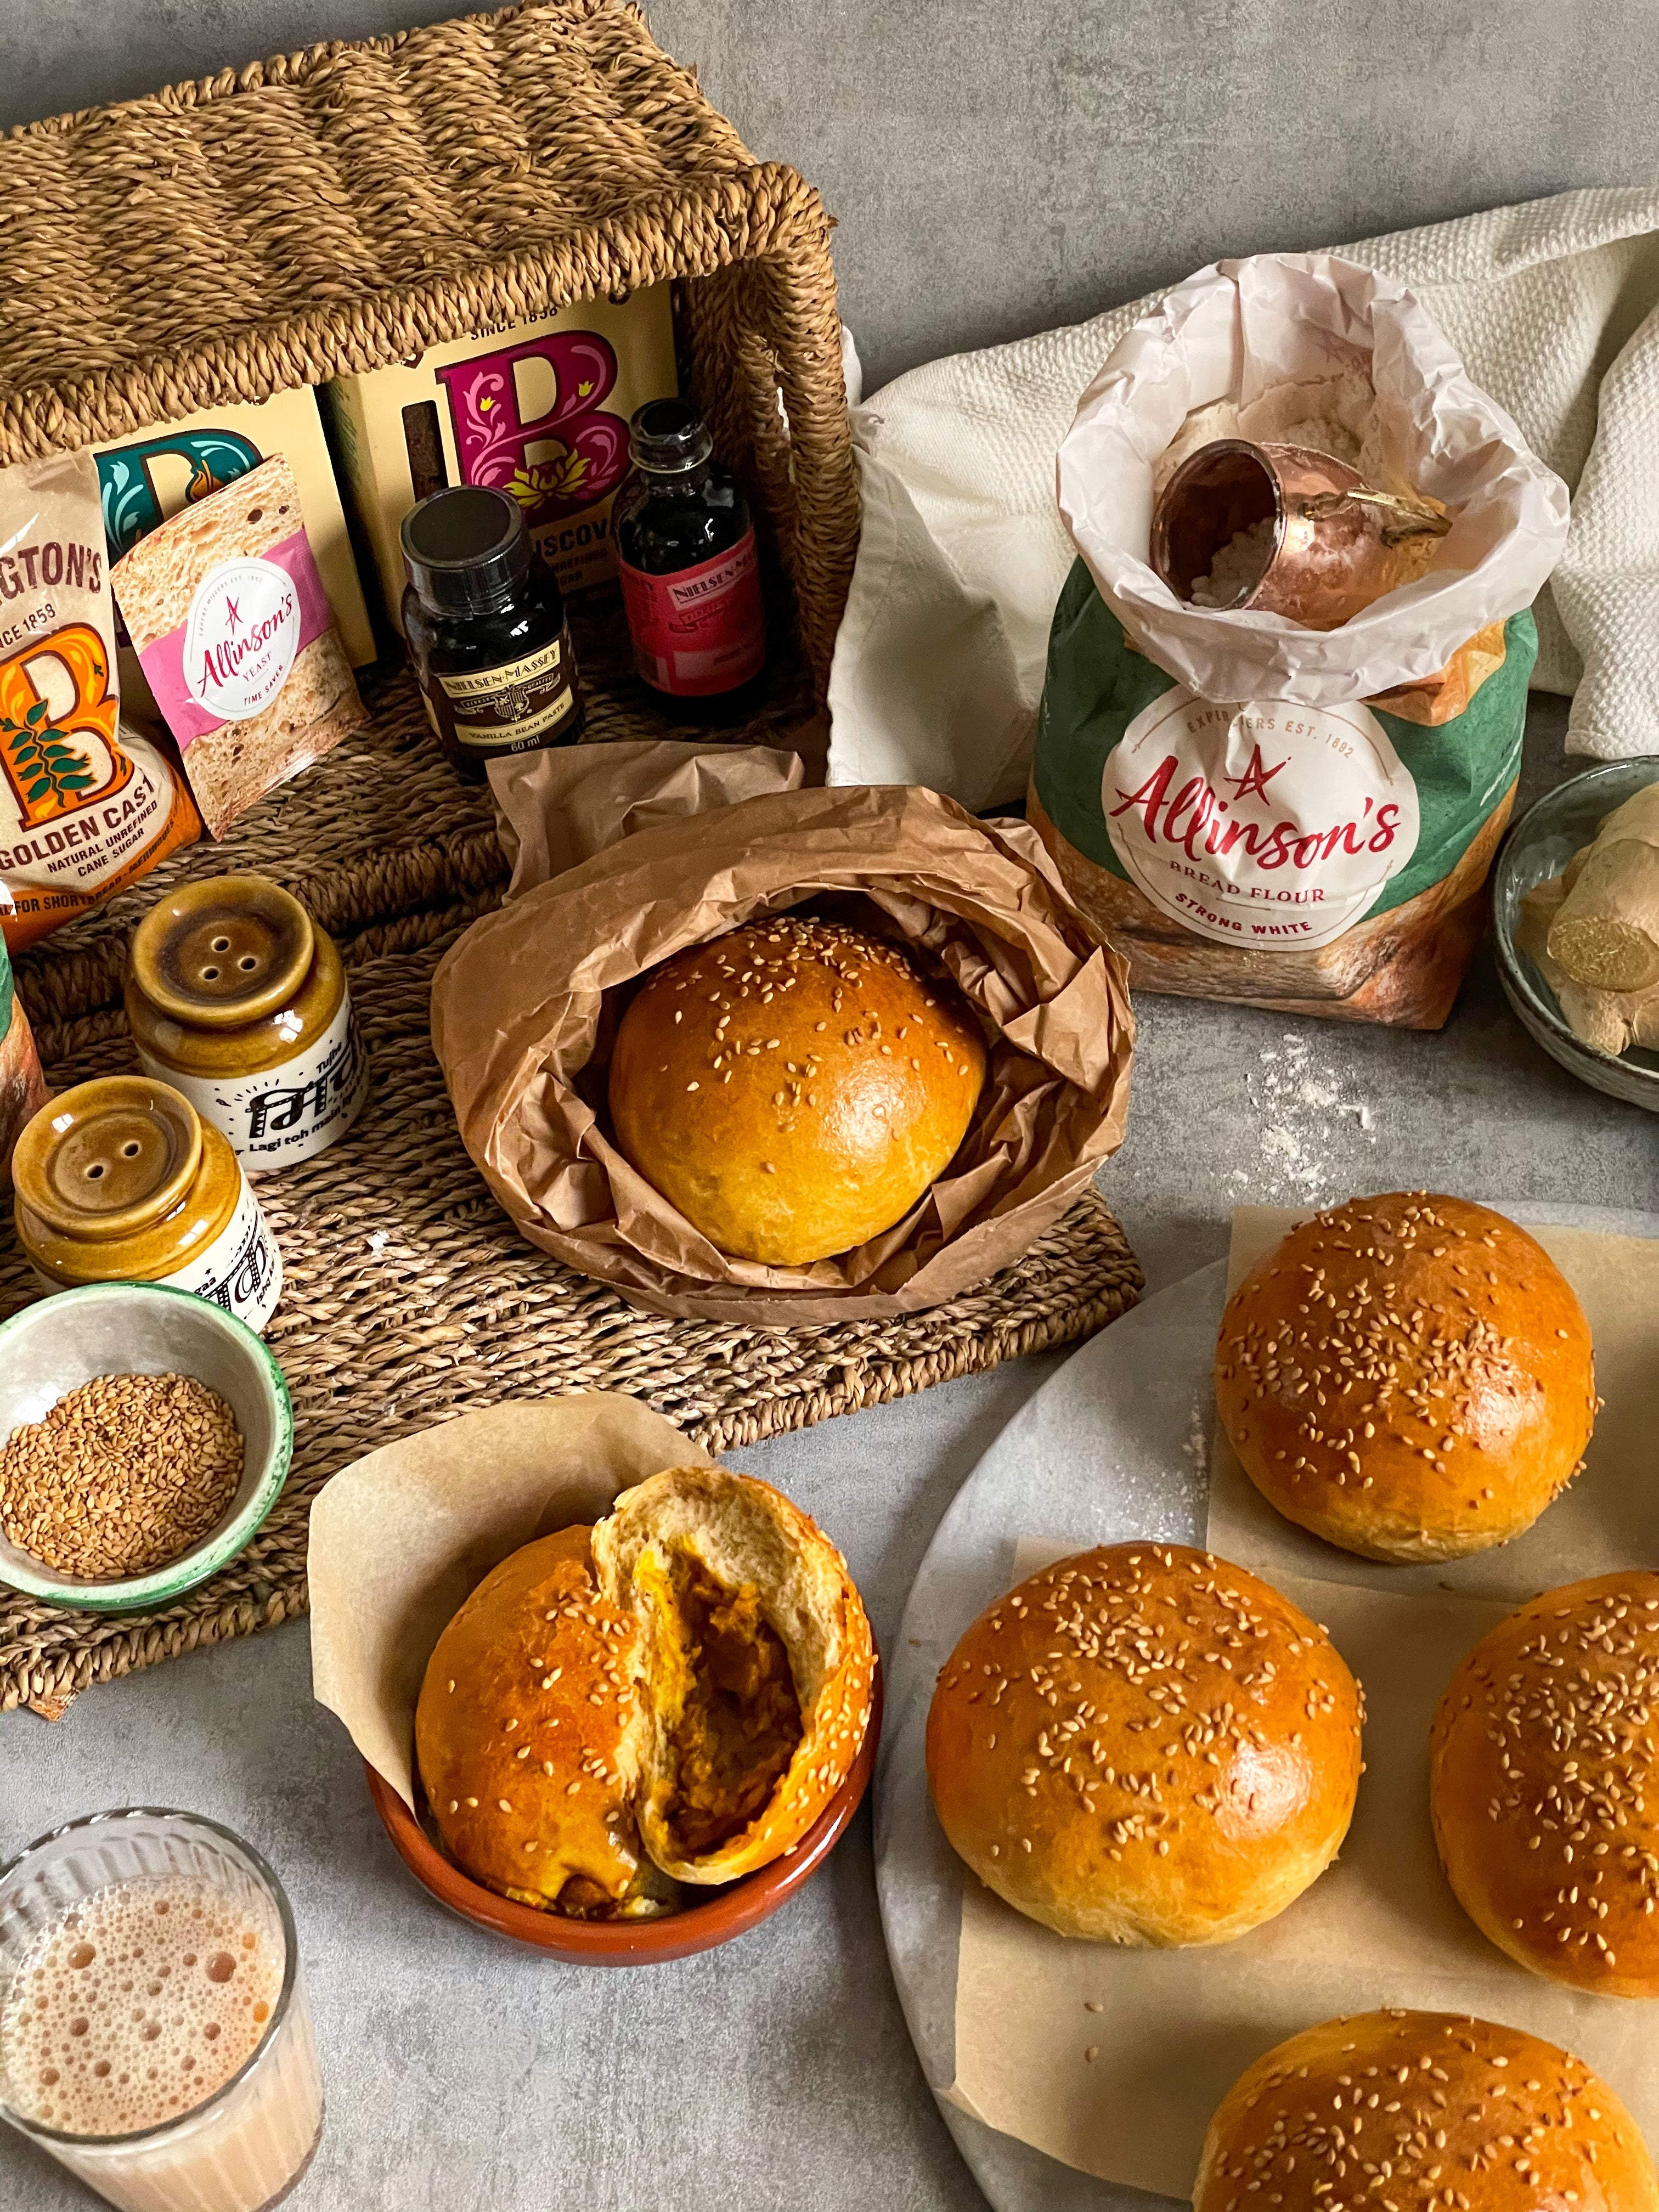 Top down view of spiced masala buns next to a hamper filled with baking ingredients